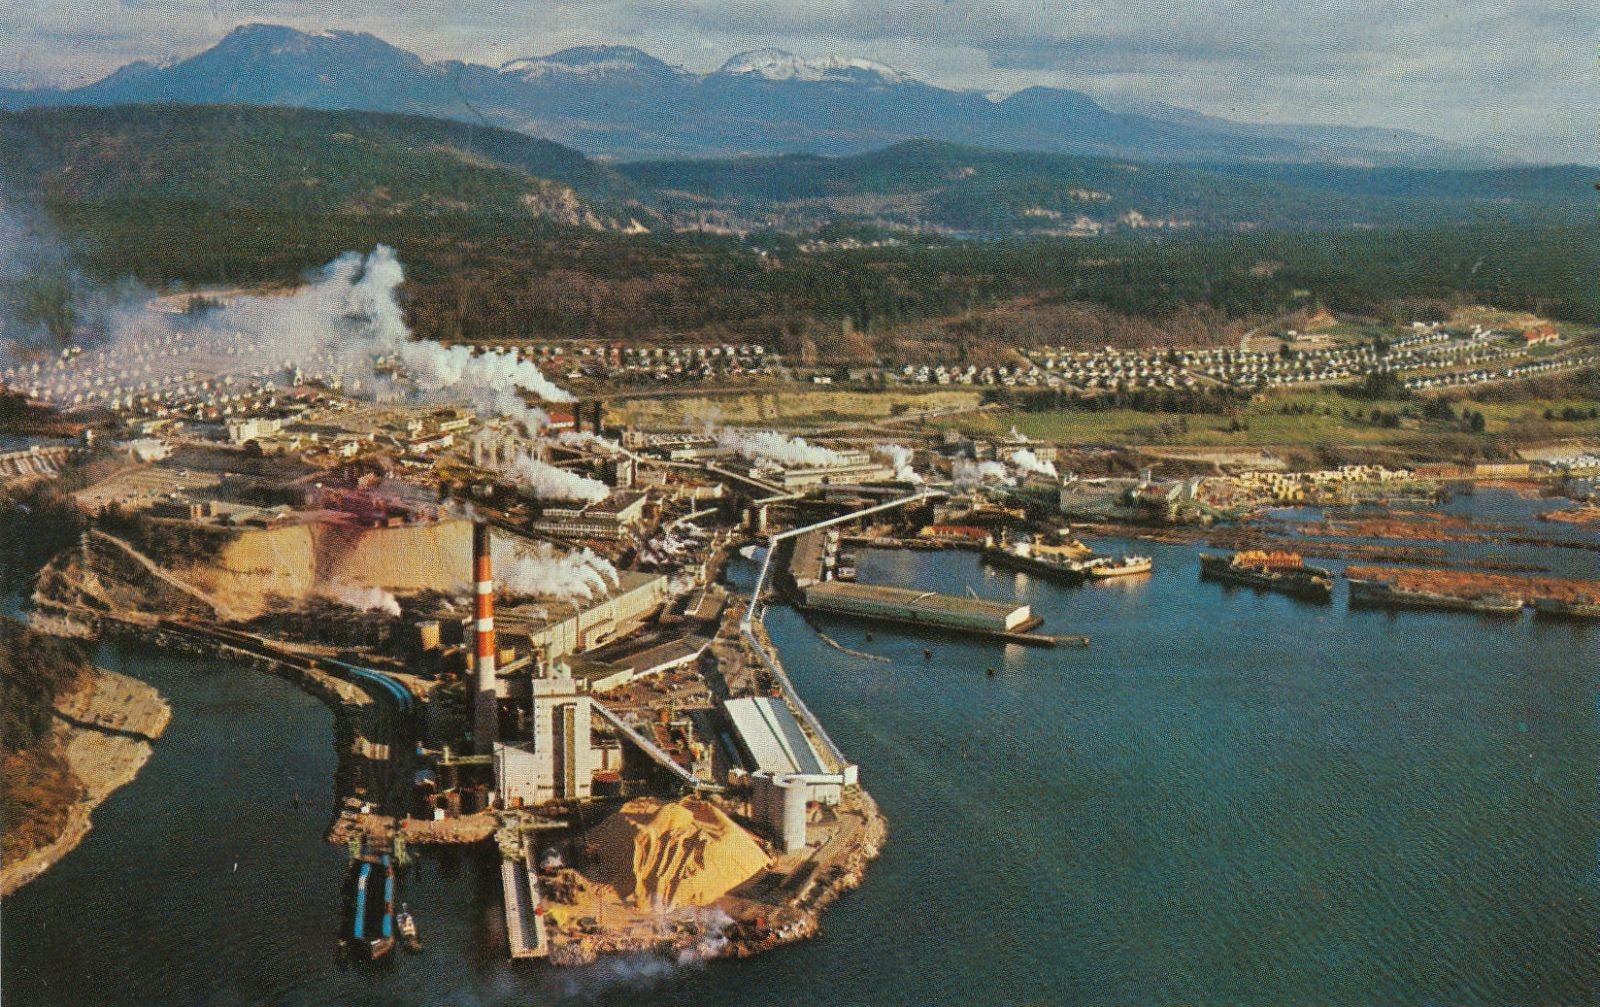 Postcard: Pulp and Paper Mill and Townsite, Powell River, BC, c.1960s BY Rob - Flickr